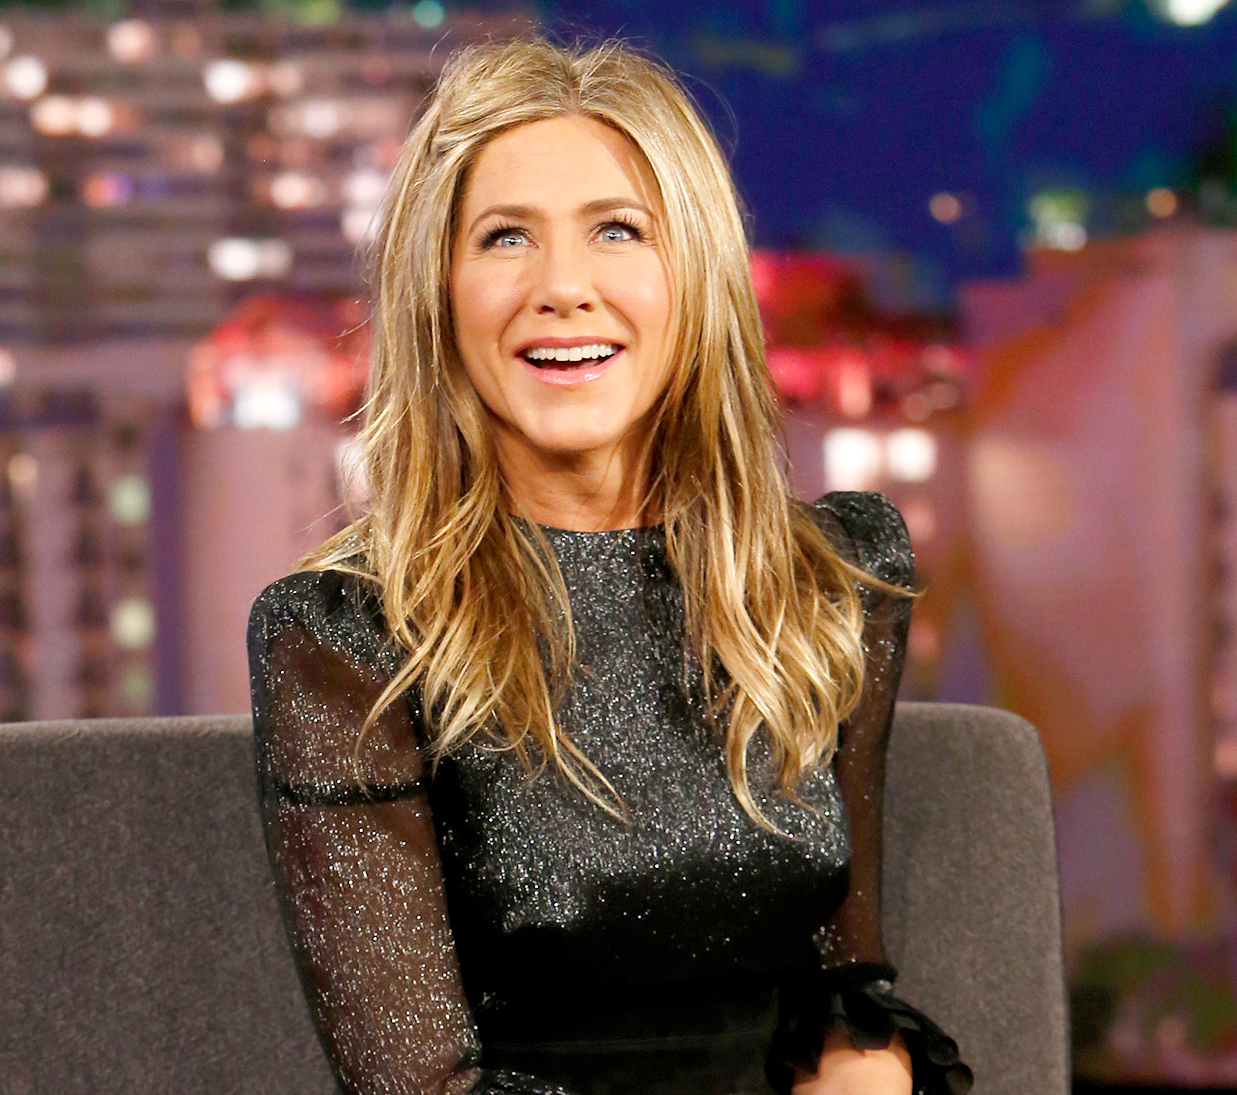 """jennifer-aniston-brad-pitt-divorce-relationship - """"My marriages, they've been very successful, in [my] personal opinion,"""" the We're the Millers actress revealed to Elle in December 2018 of her past marriages to Pitt and Justin Theroux. """"And when they came to an end, it was a choice that was made because we chose to be happy, and sometimes happiness didn't exist within that arrangement anymore."""""""